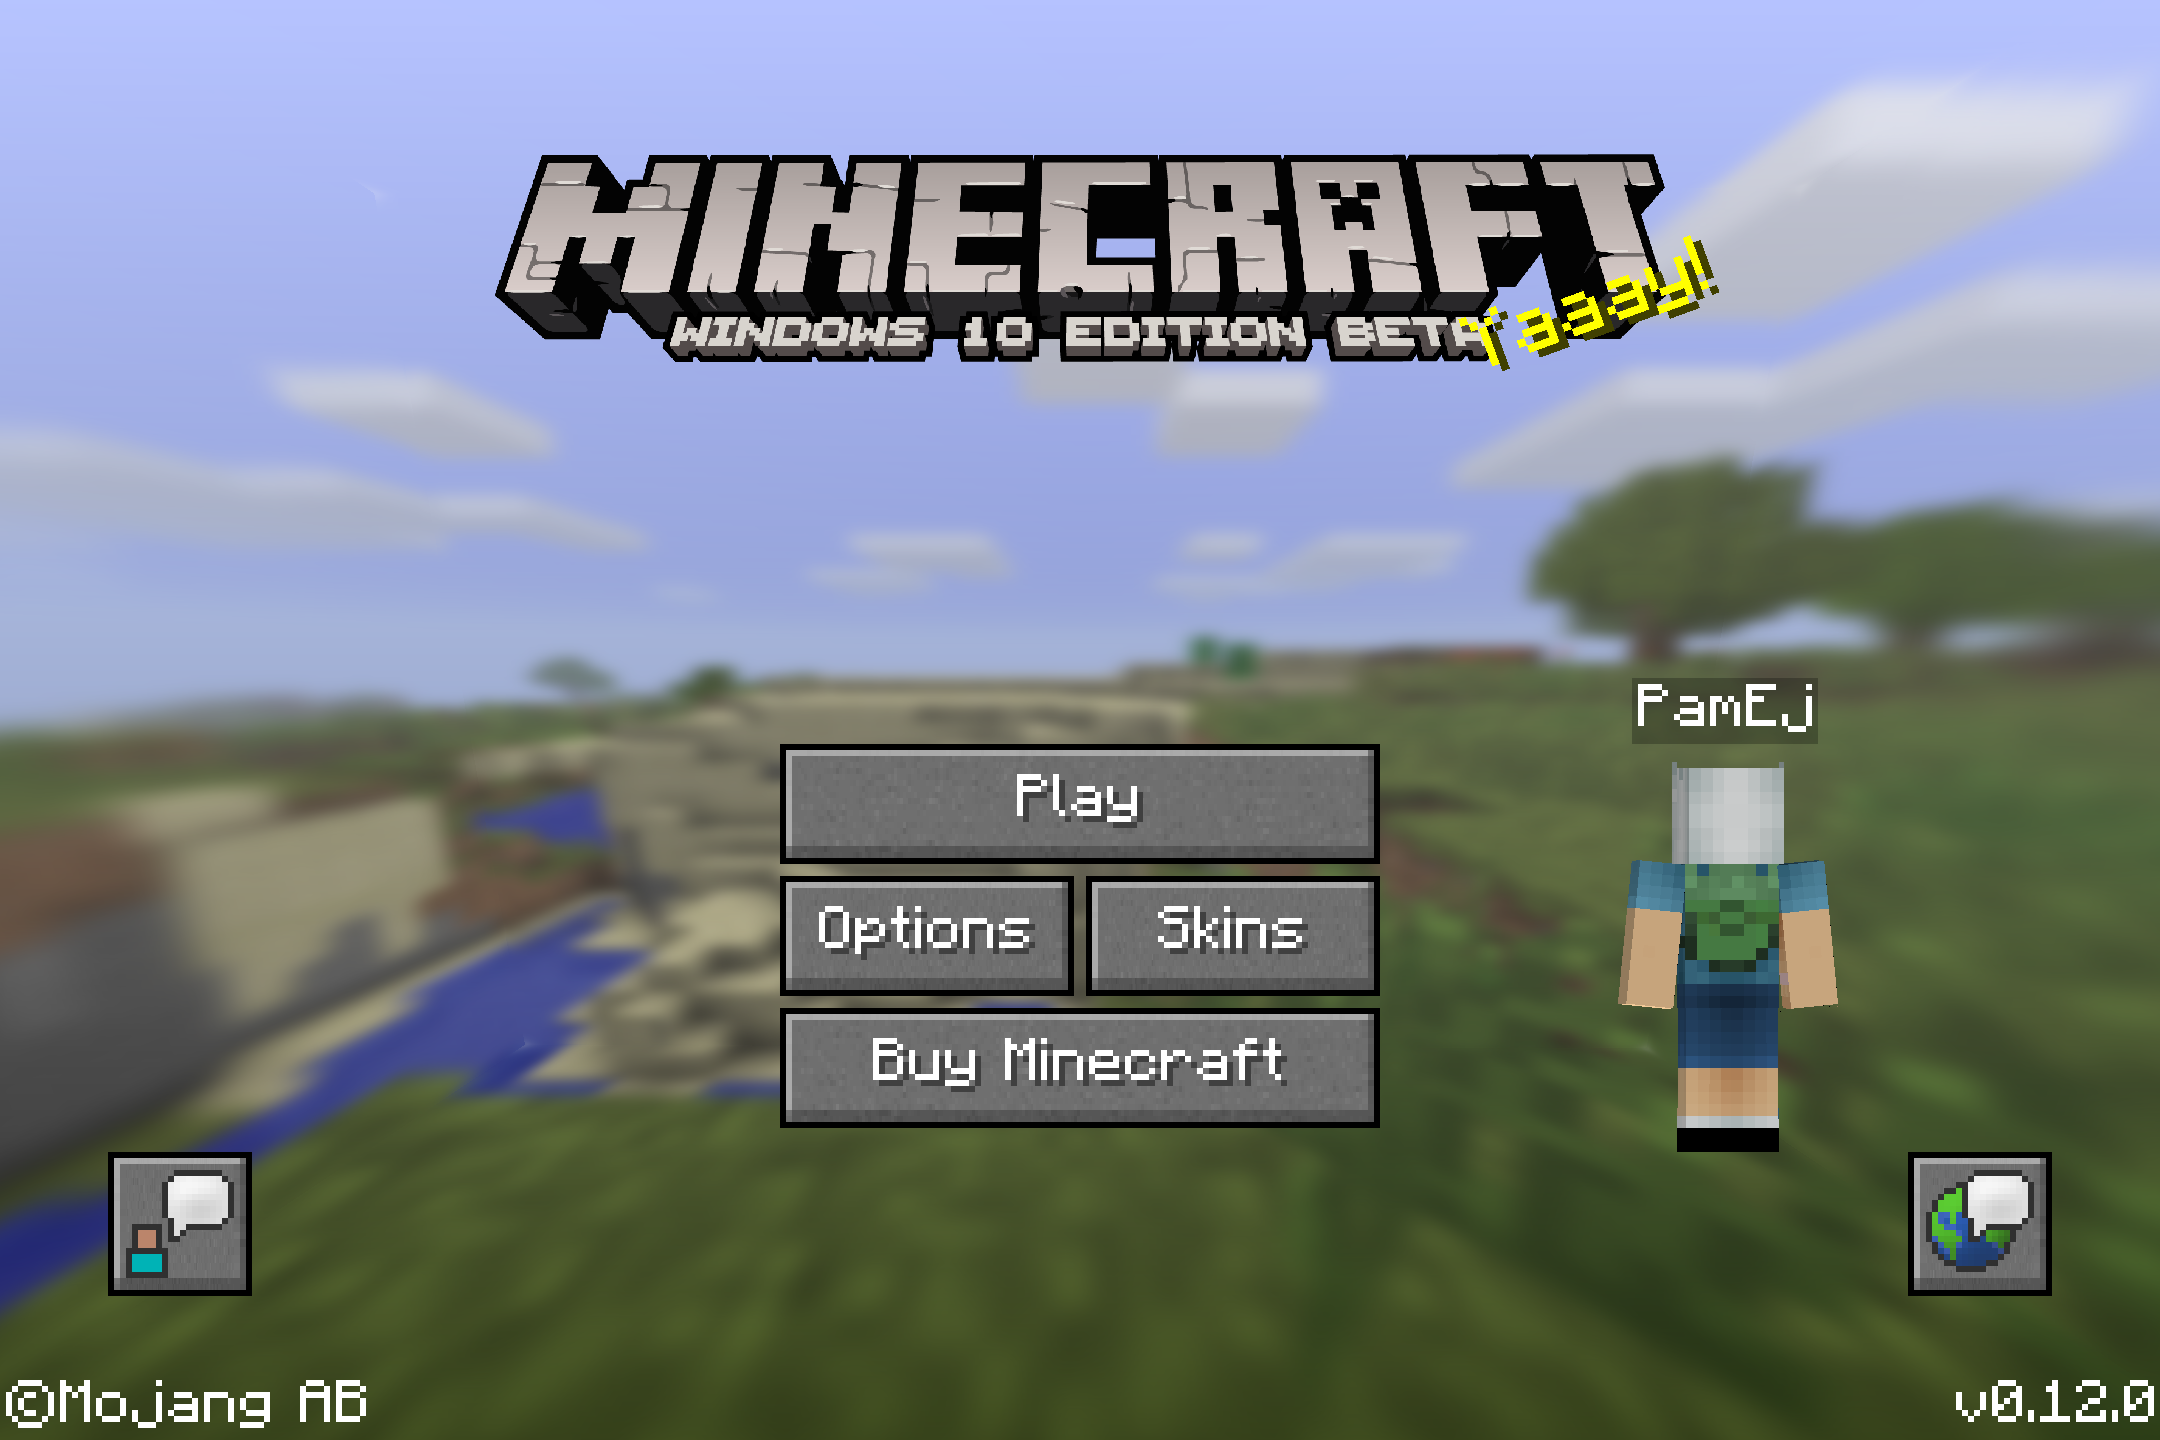 Mc win 10 ed purchase problem minecraft bedrock support screenshot 77 ccuart Image collections